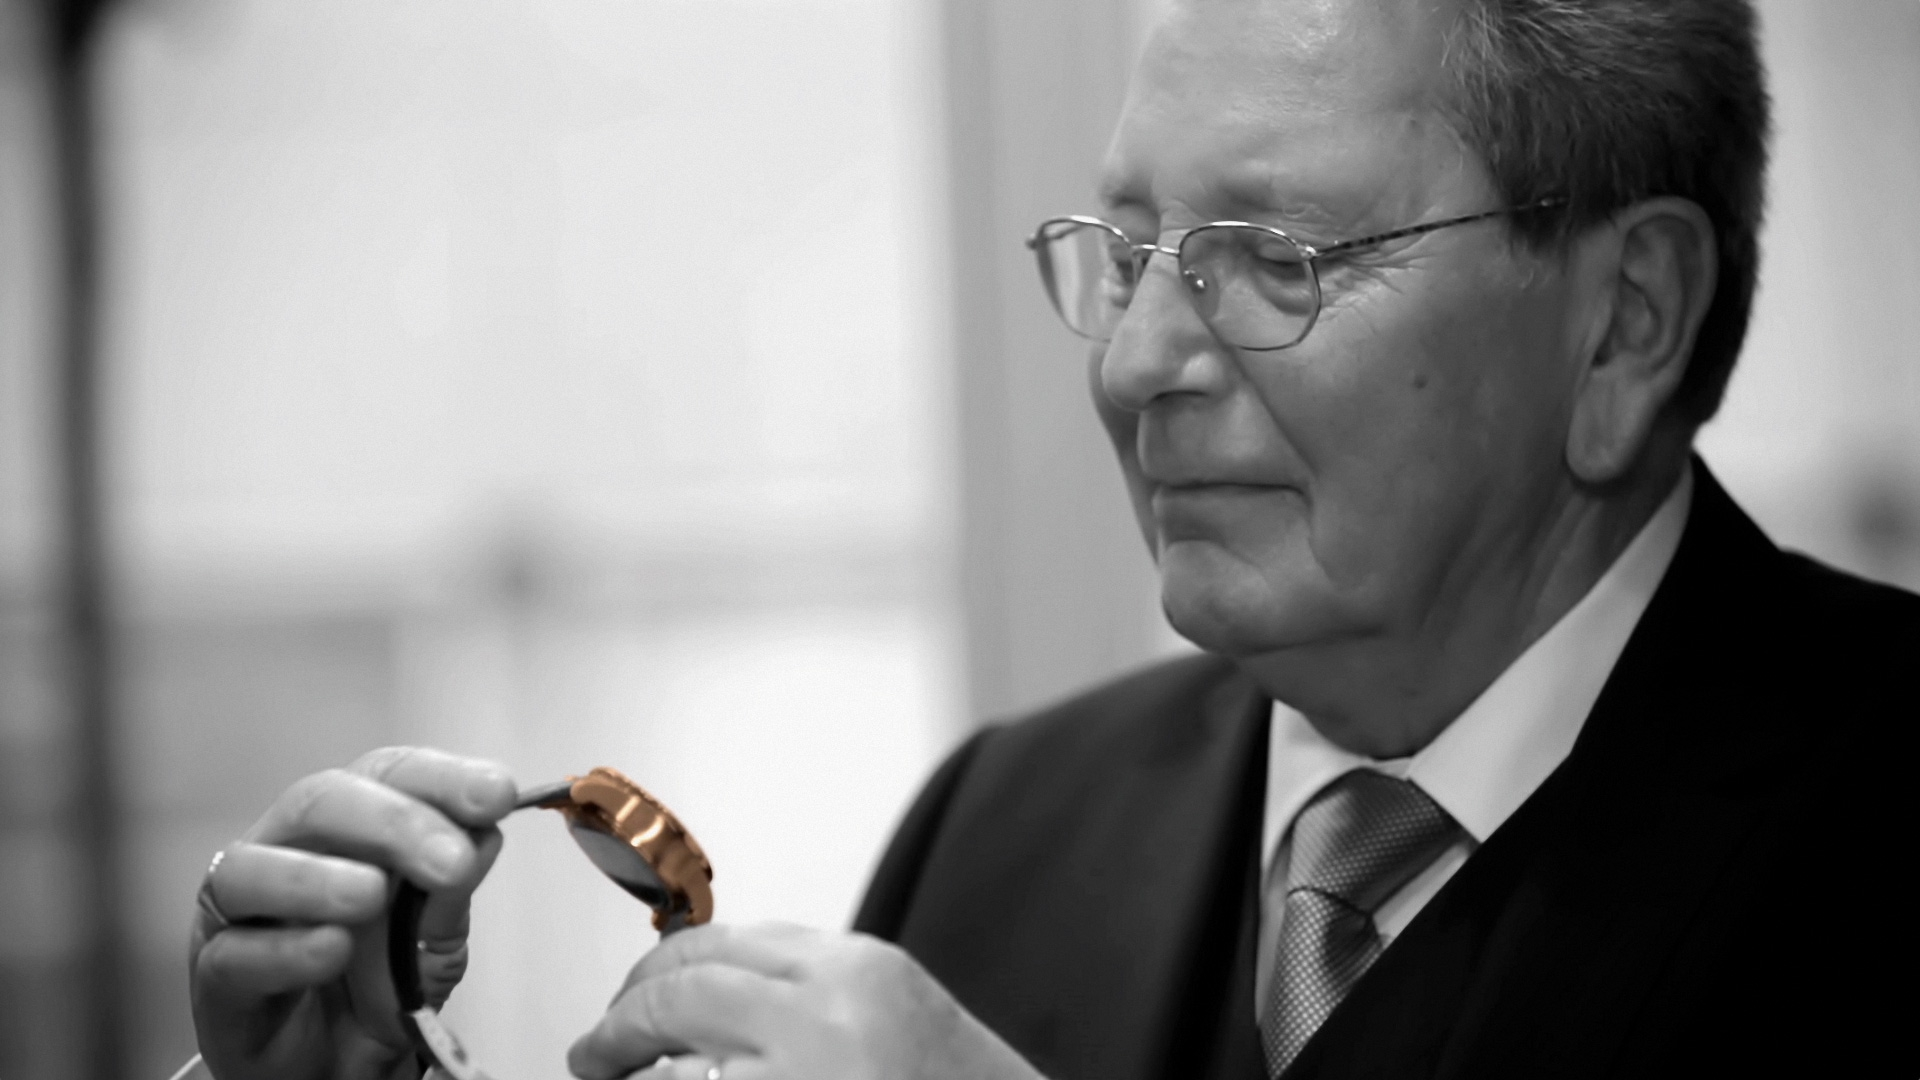 Mr Roger Dubuis (Watchmaker)